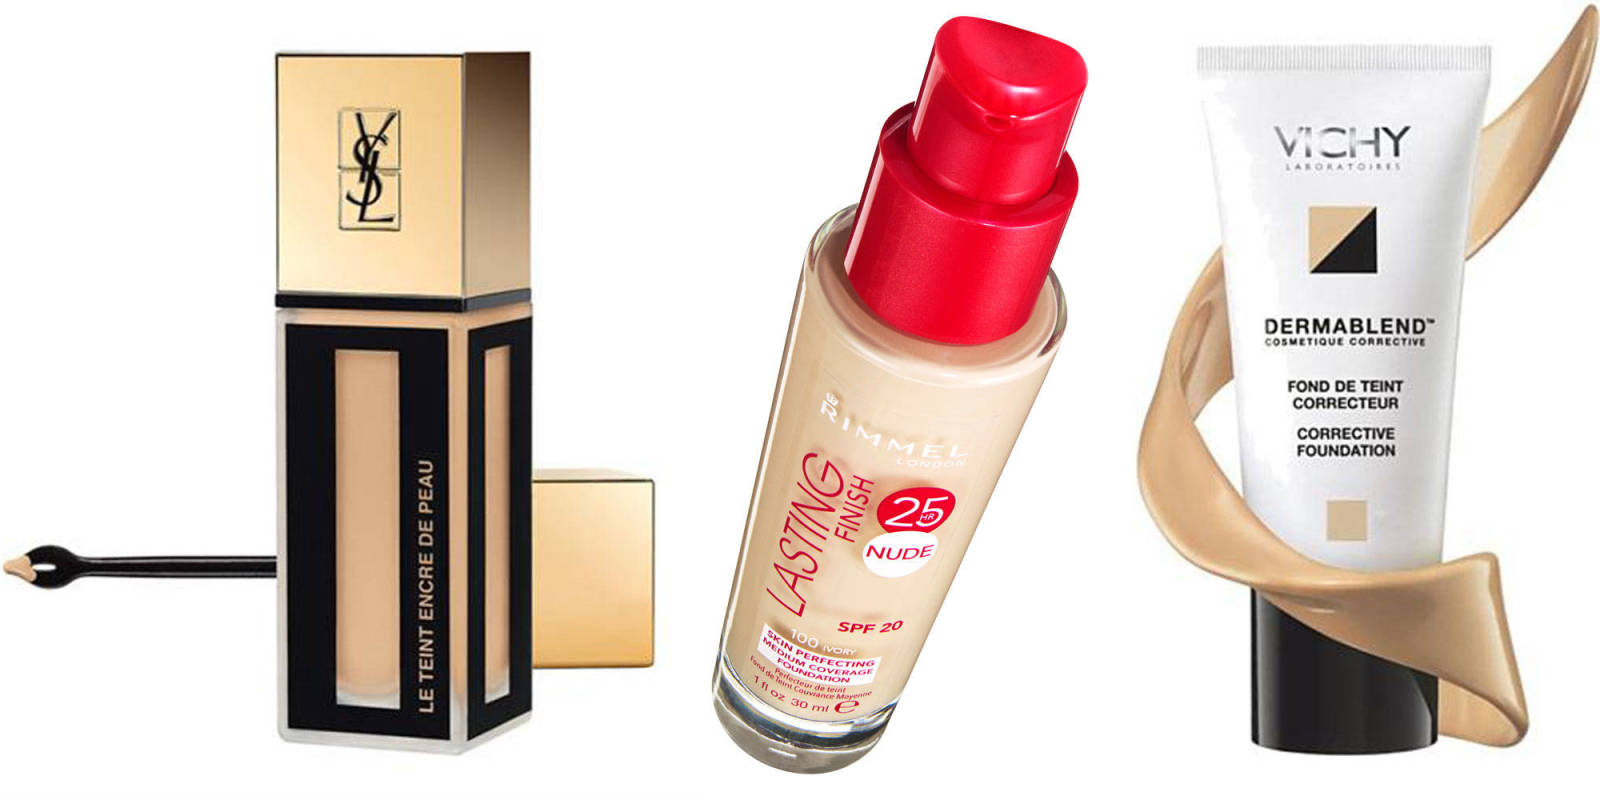 Best foundation for 40 year old woman